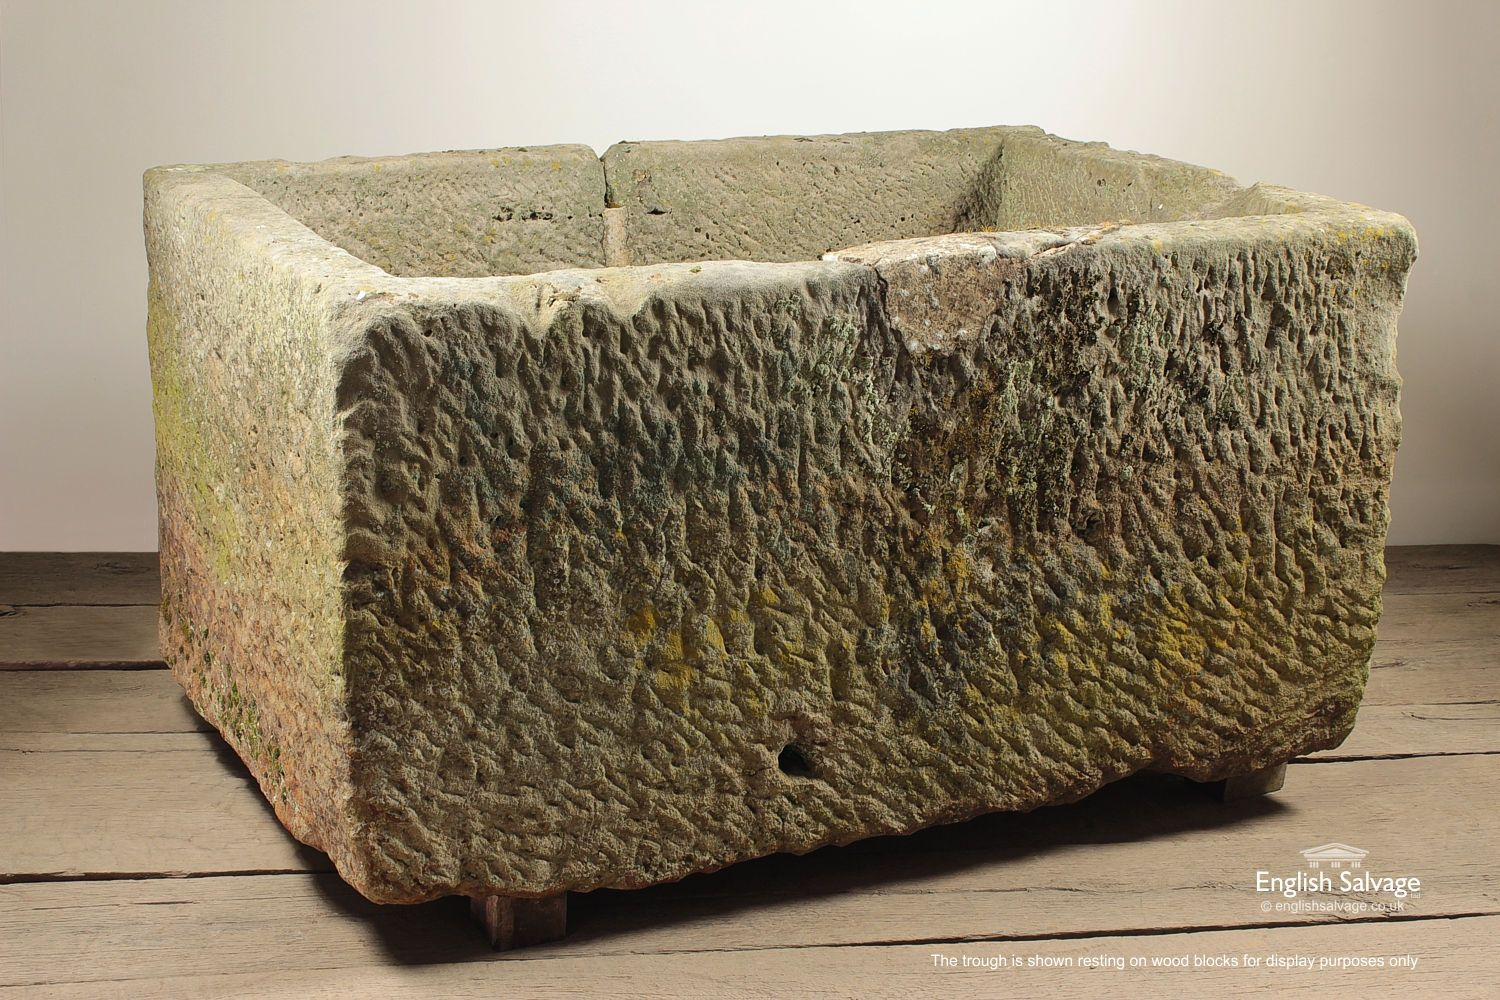 Stone Garden Planters And Troughs Reclaimed huge stone garden trough planter carved and shaped architectural salvage reclamation yard antiques garden troughstrough plantersreclamation workwithnaturefo